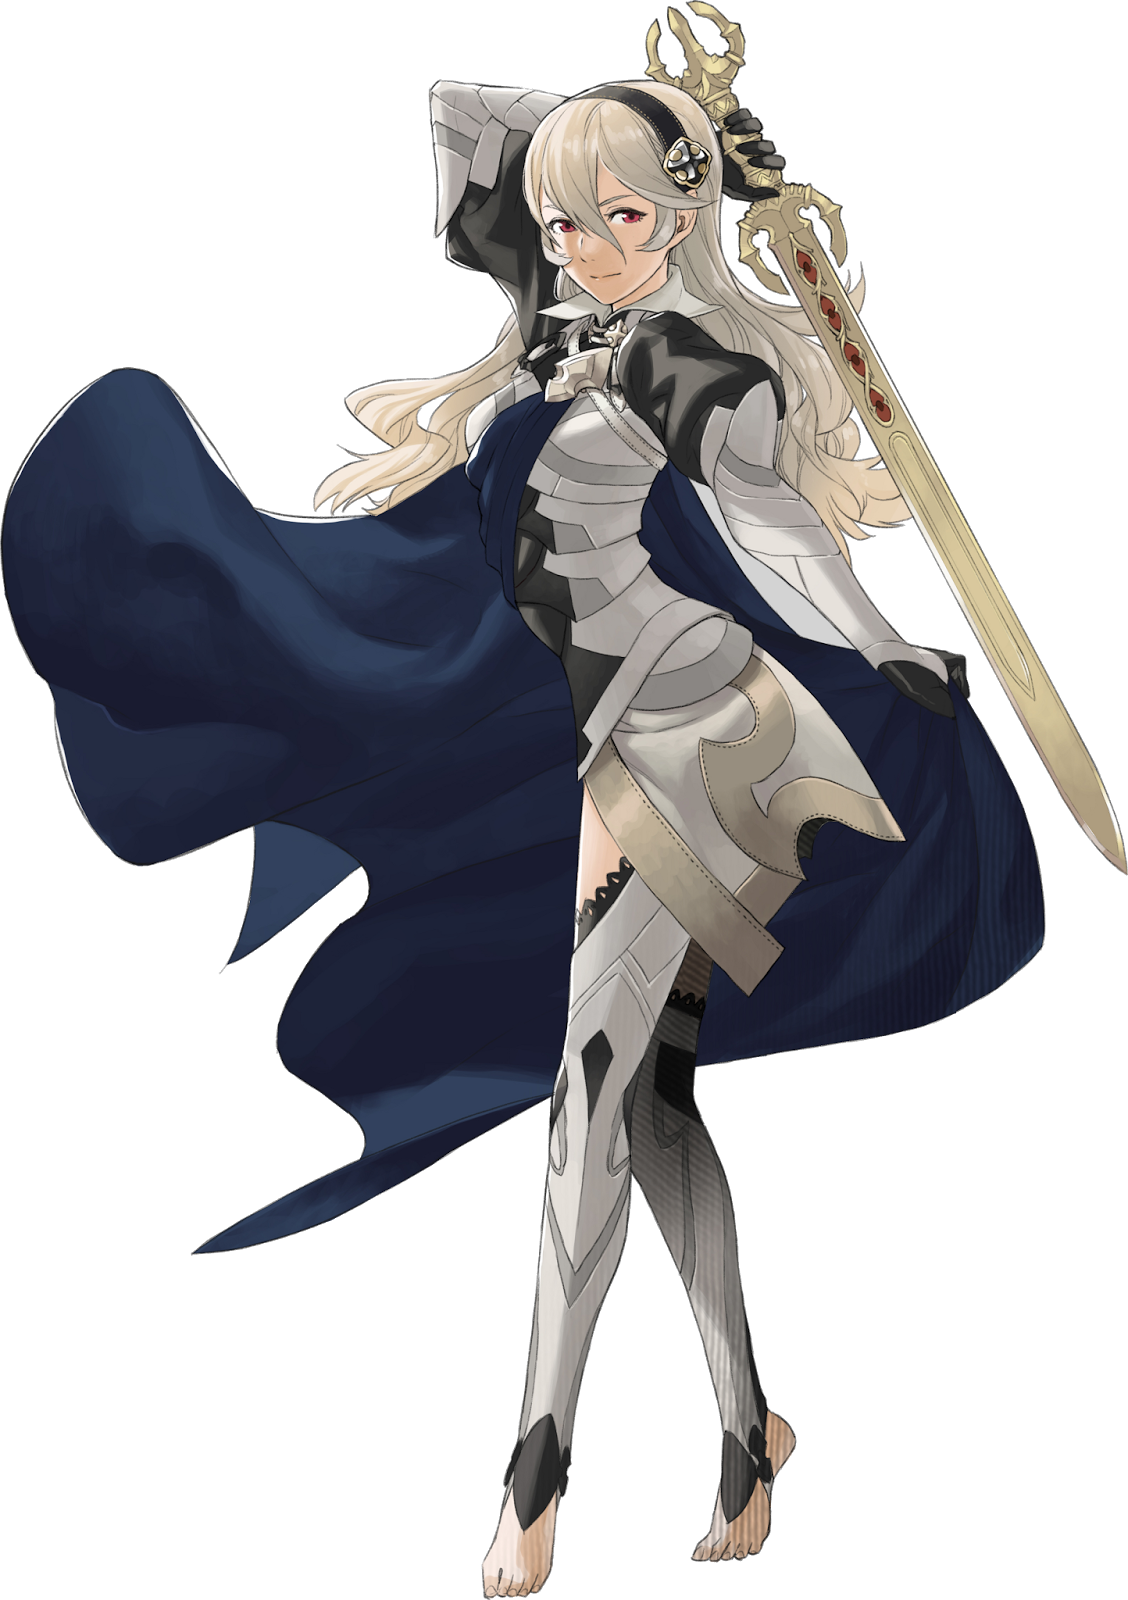 Fire Emblem If female protagonist has two left feet